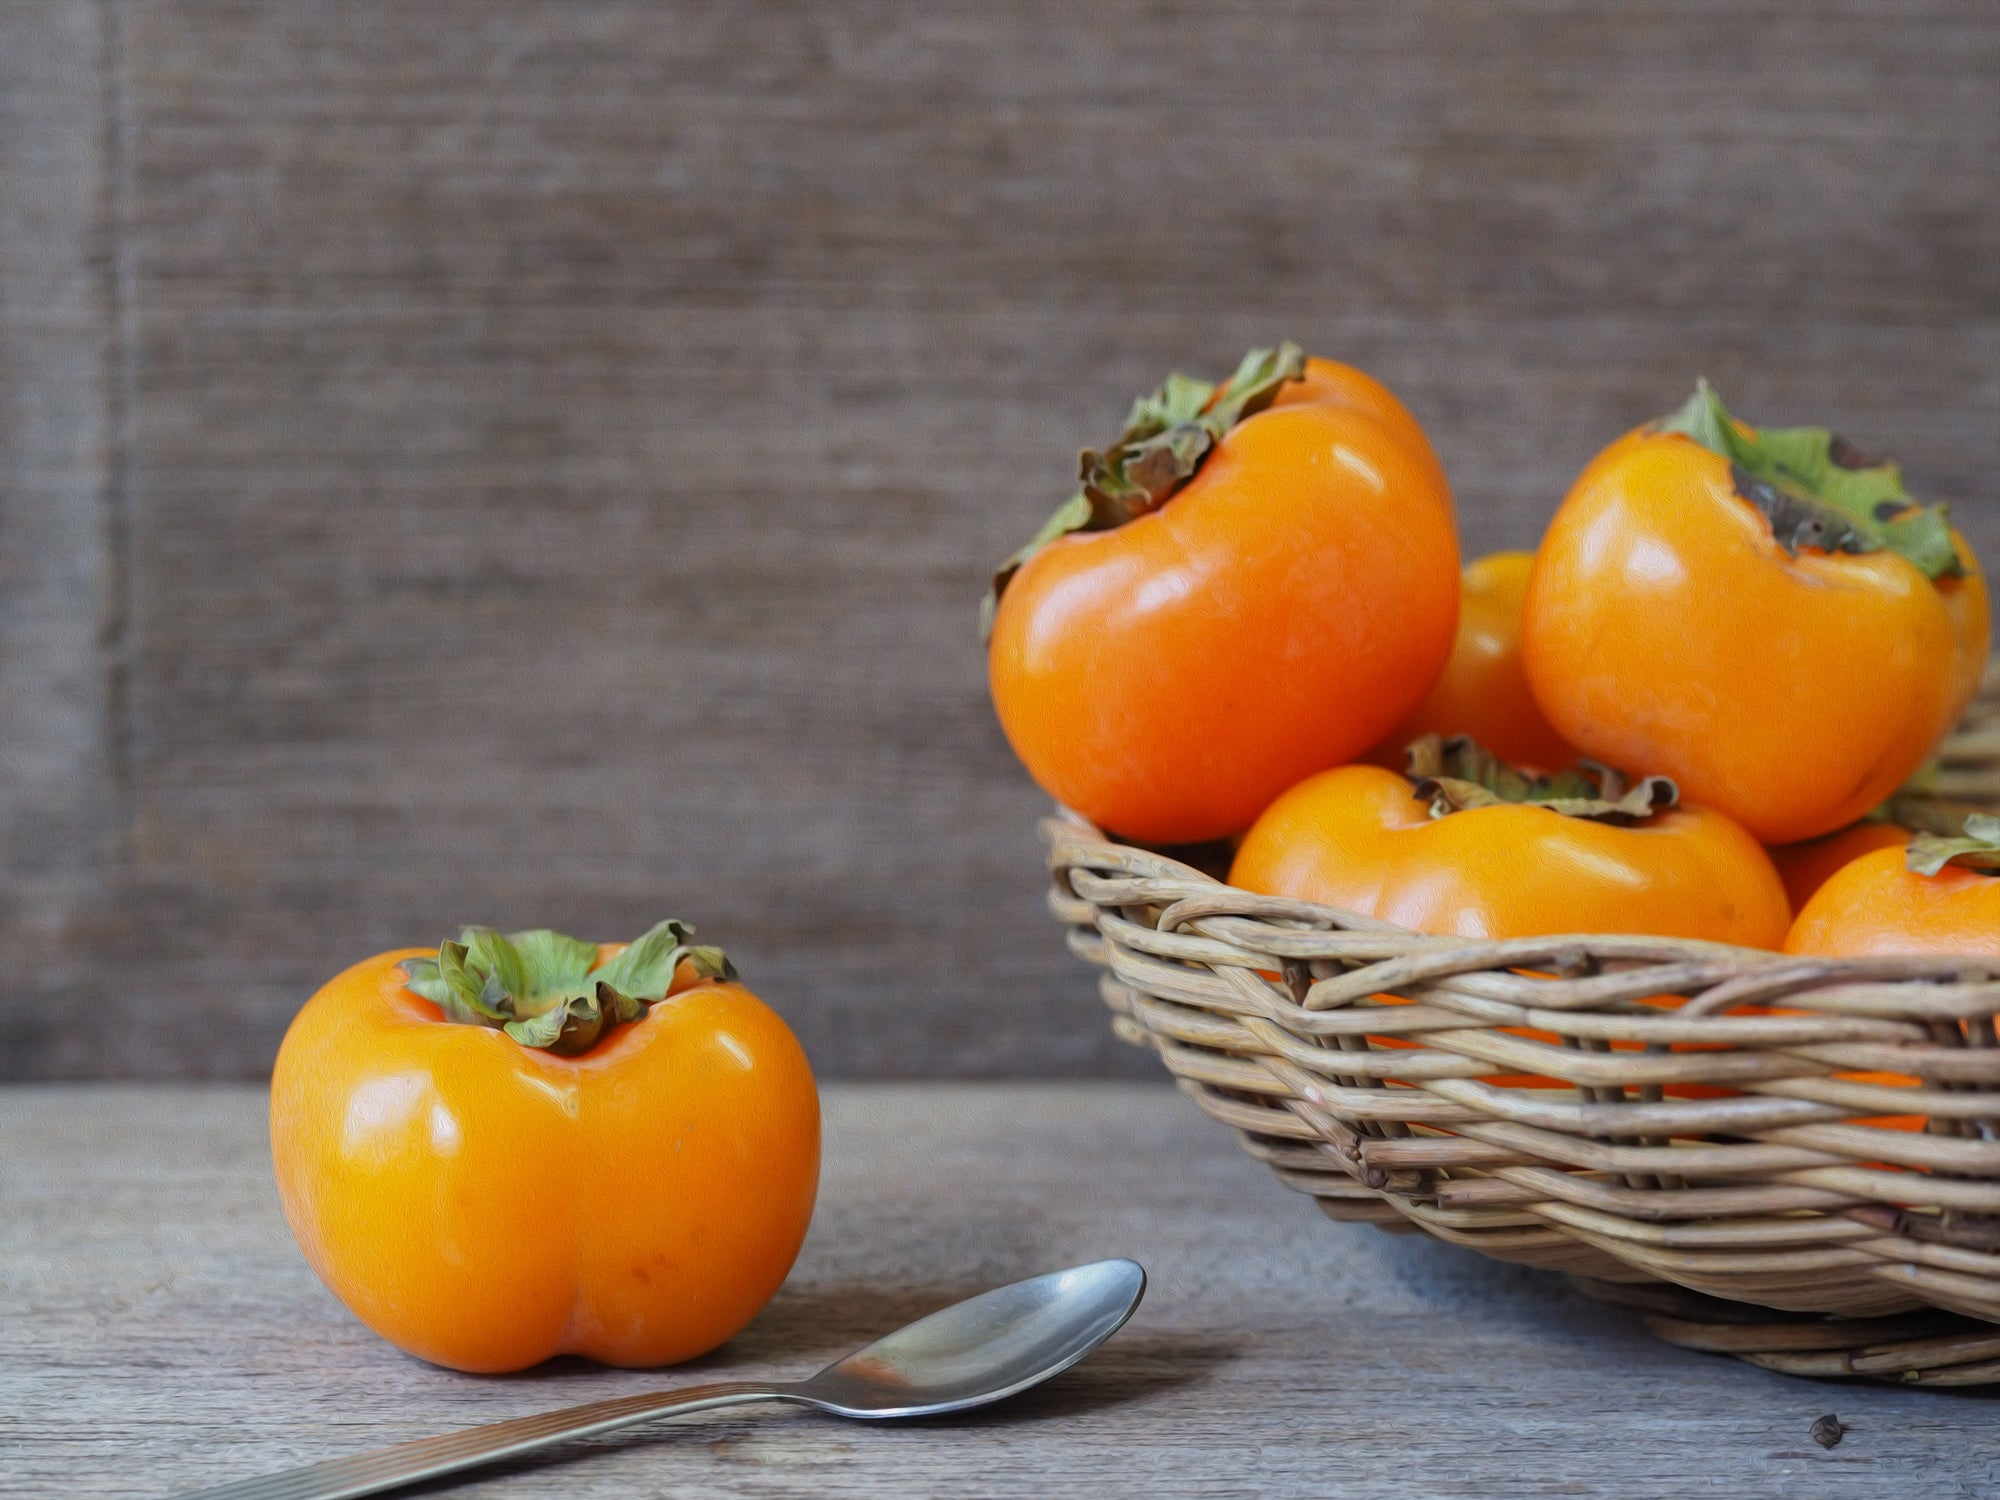 10 Interesting Persimmon Facts for Your Enjoyment